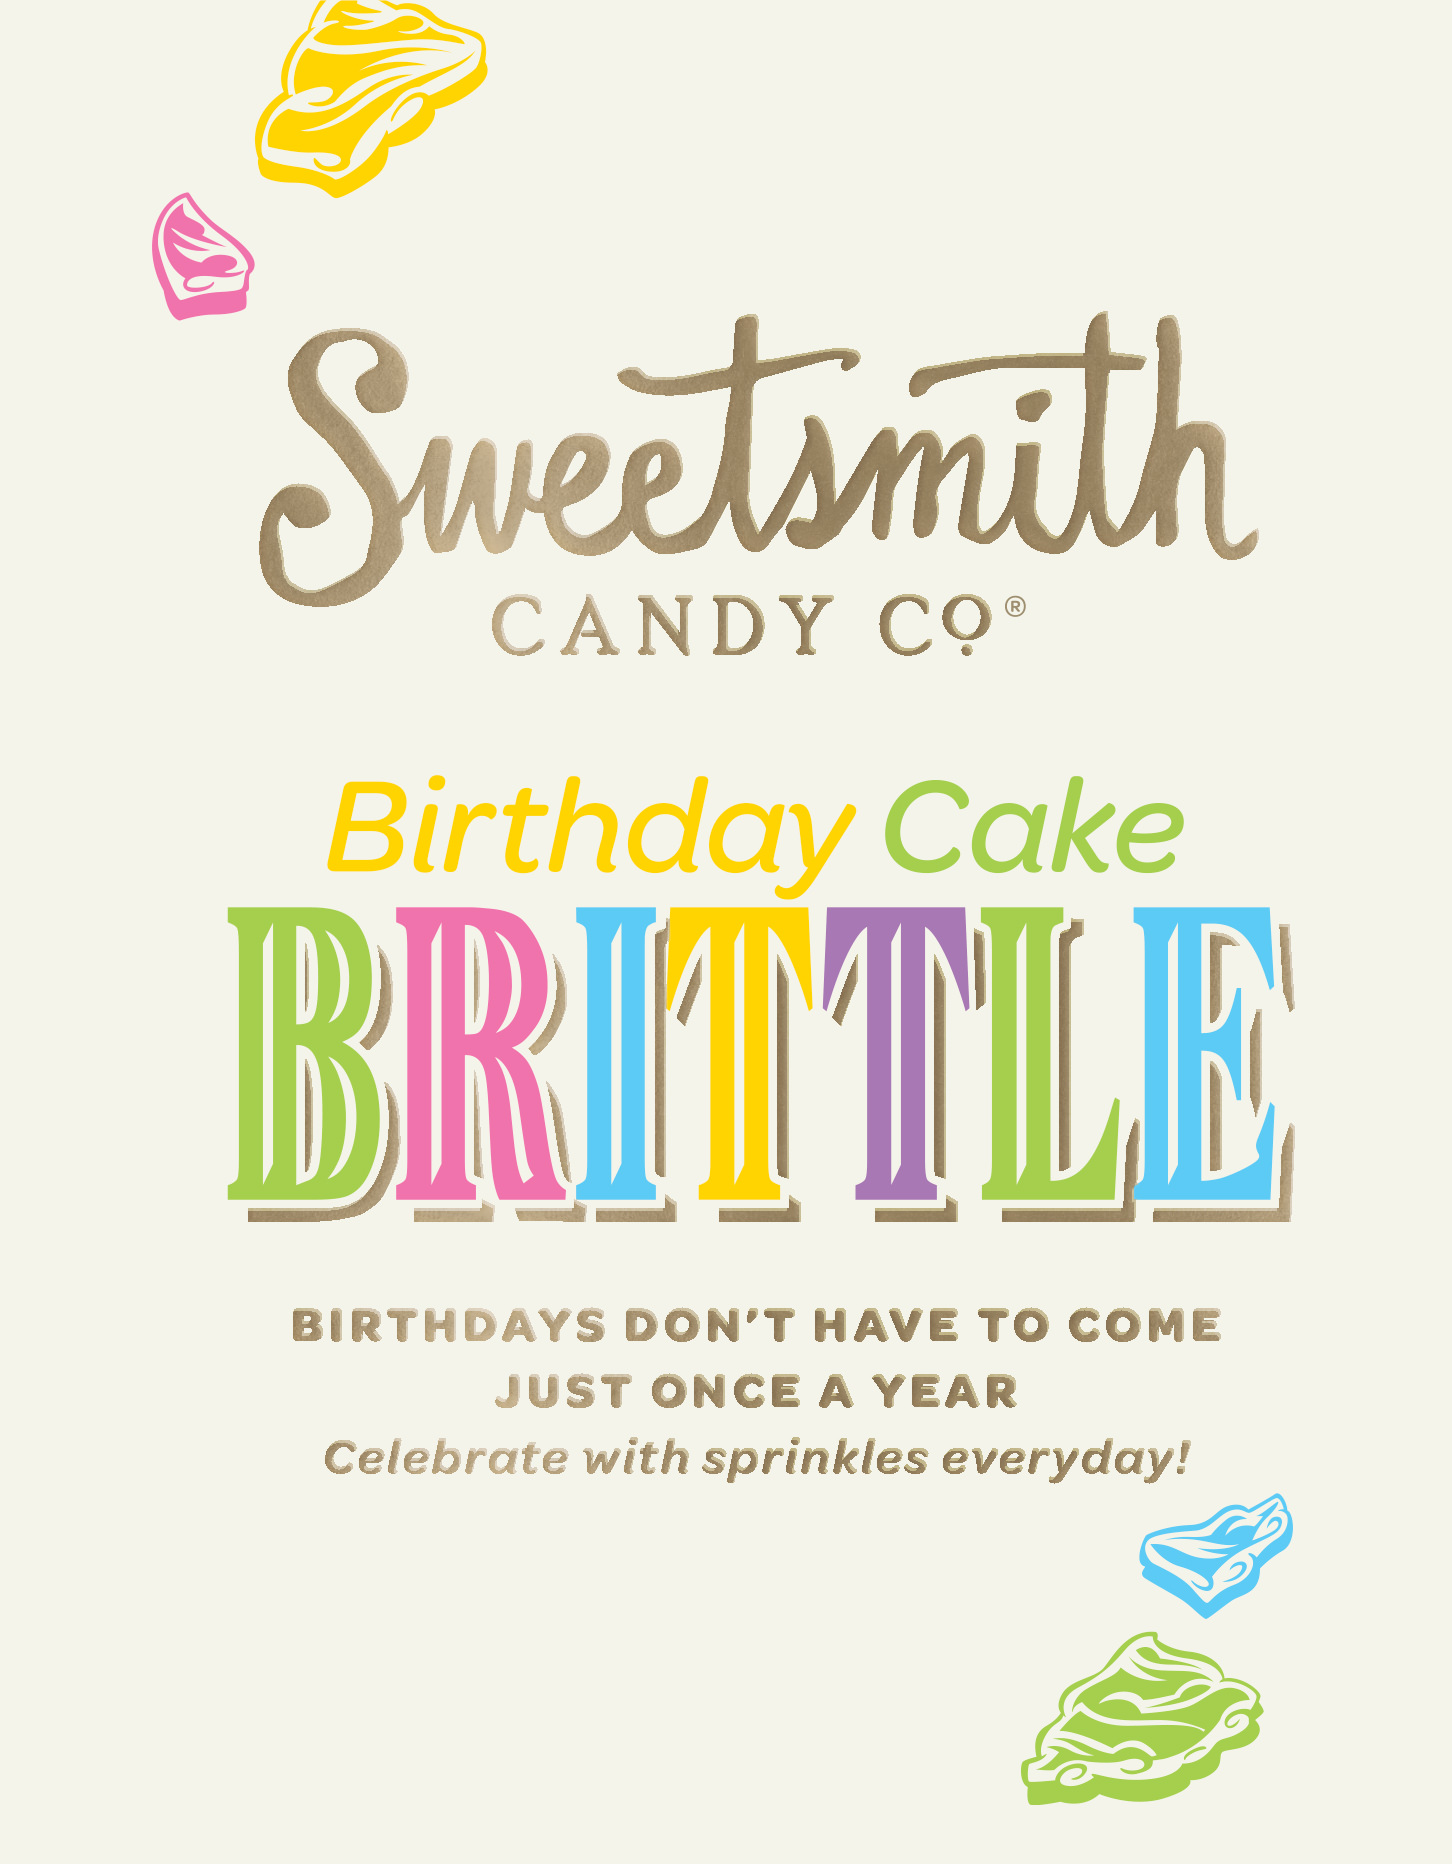 Chad Roberts Design Ltd. Sweetsmith Candy Co. Naming Brand Identity Design Package Design